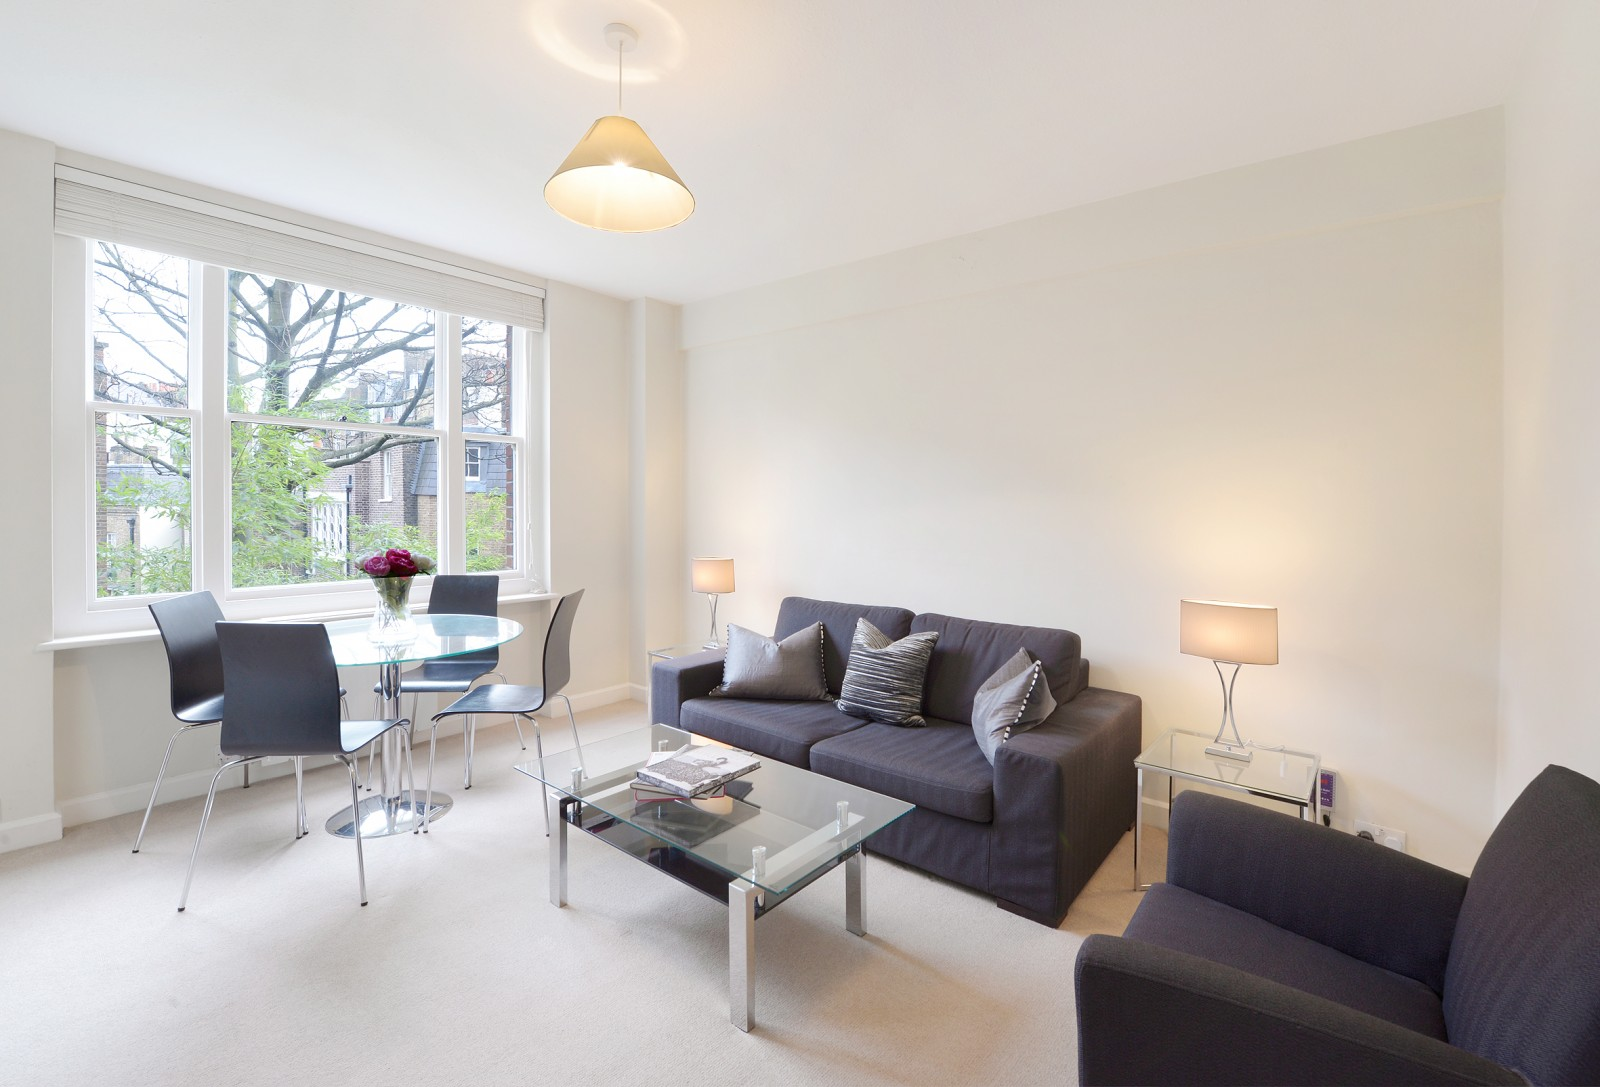 1 Bedroom Apartment To Rent Hill Street London W1j 5na